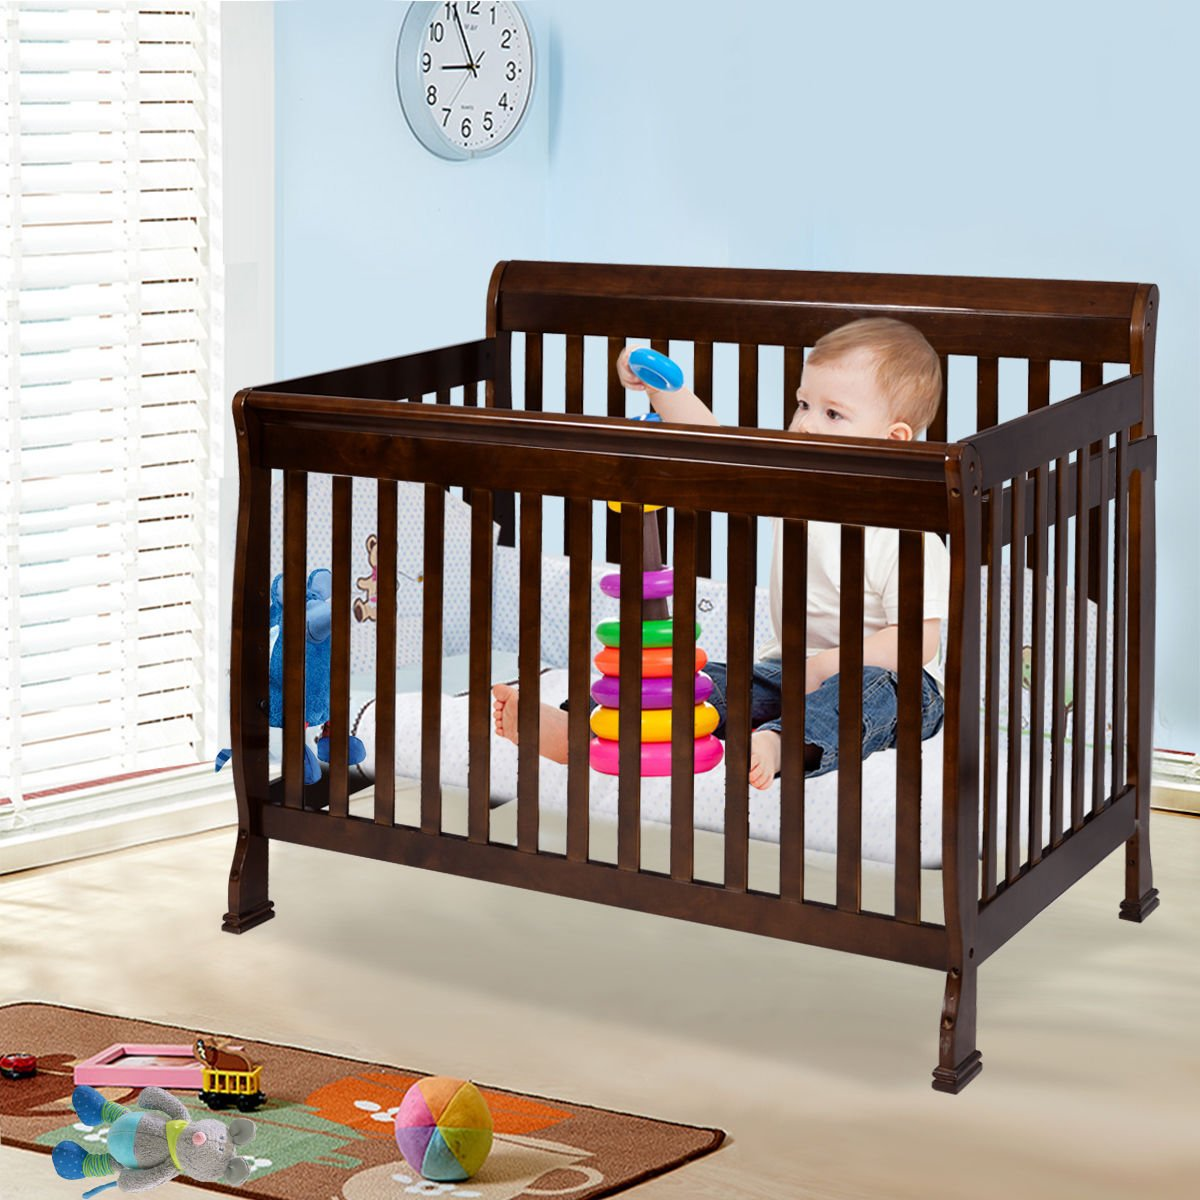 Coffee Pine Wood Baby Toddler Bed Convertible Crib Nursery Furniture Children by Happybeamy (Image #3)